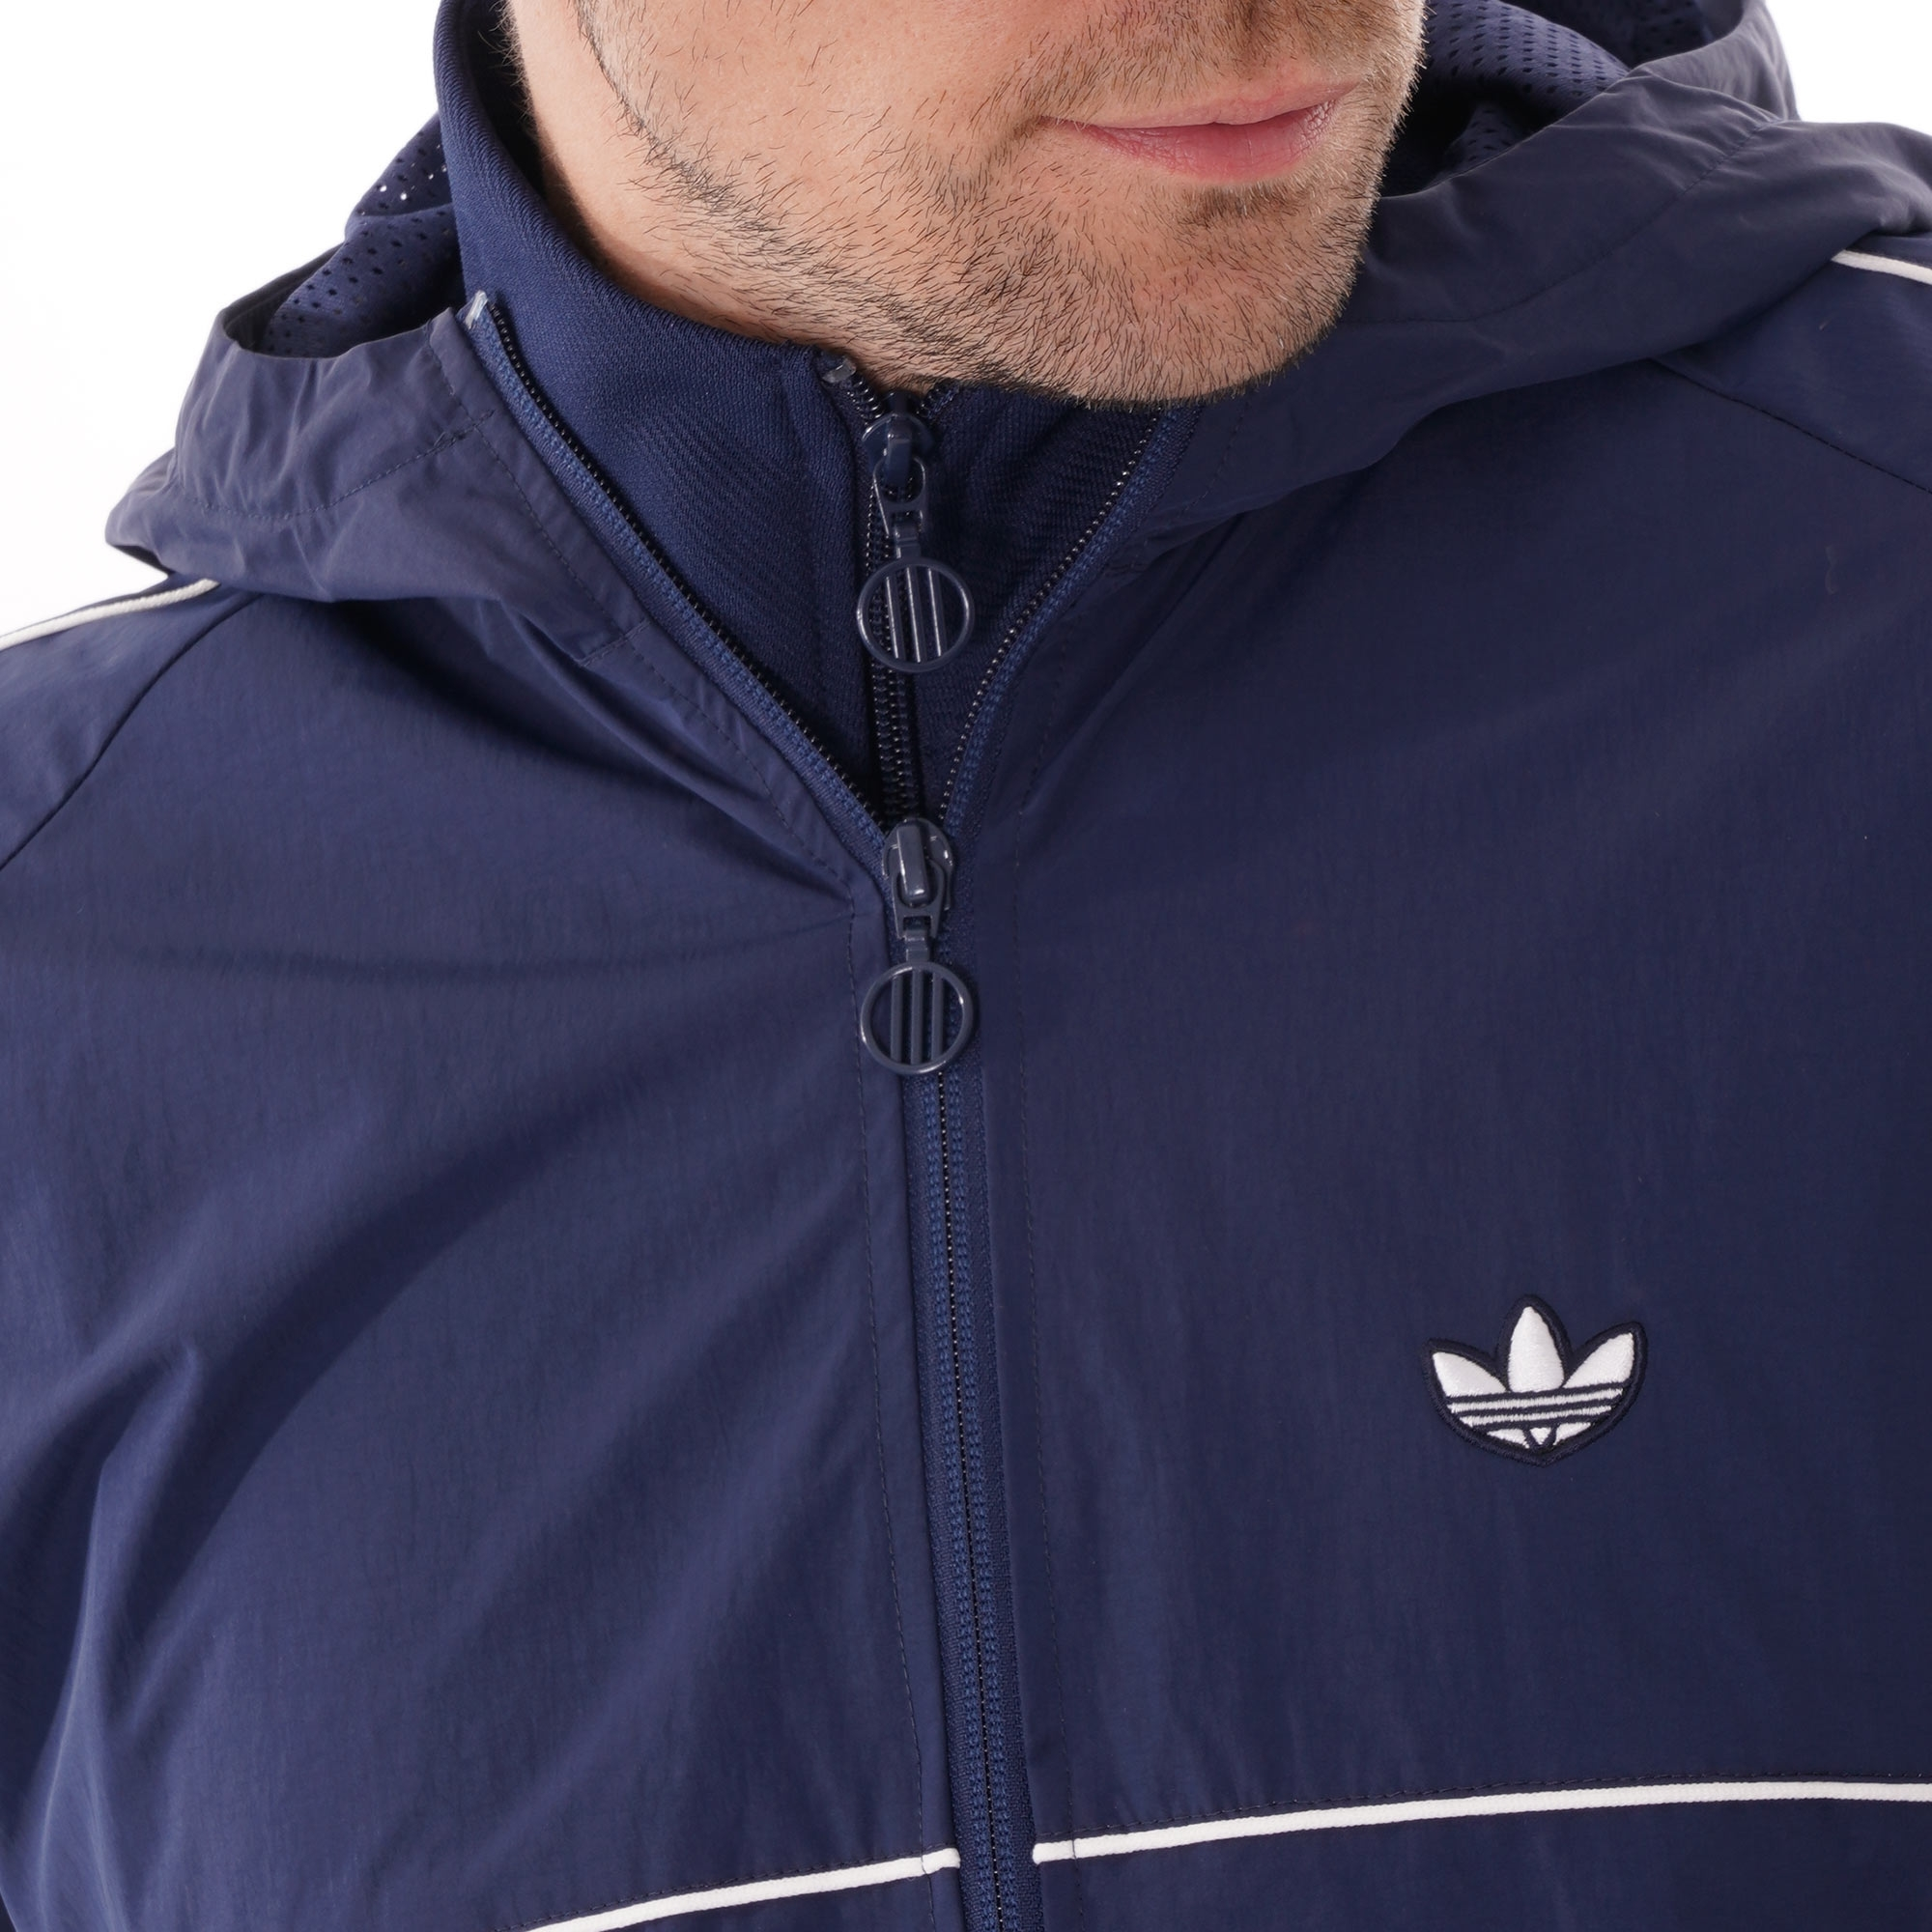 adidas Originals Samstag Track Top Night Indigo